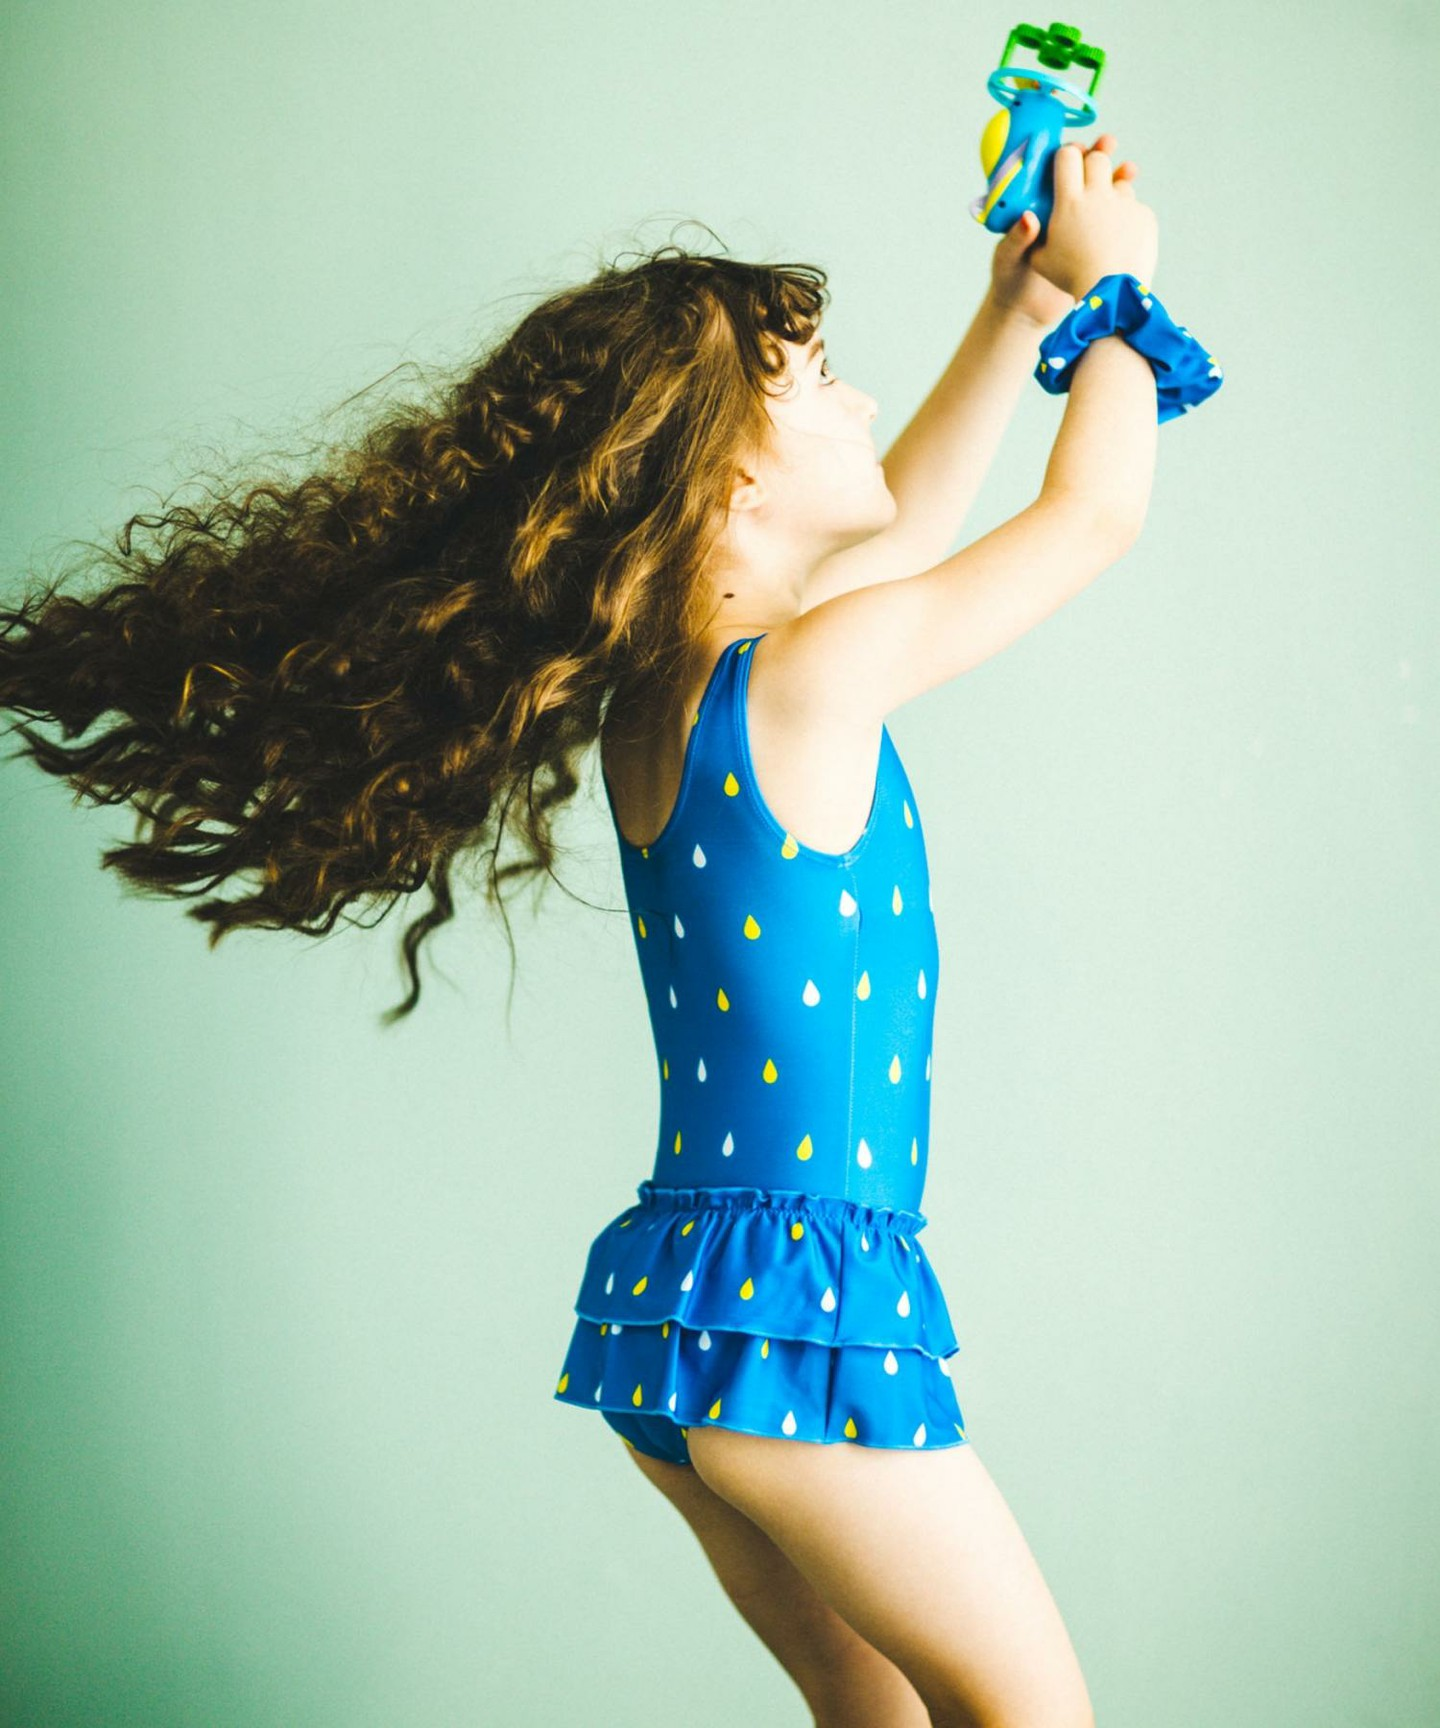 Blue Suzuku ruffle kids swimsuit by Japanese kids fashion brand Green Label Relaxing by United Arrows